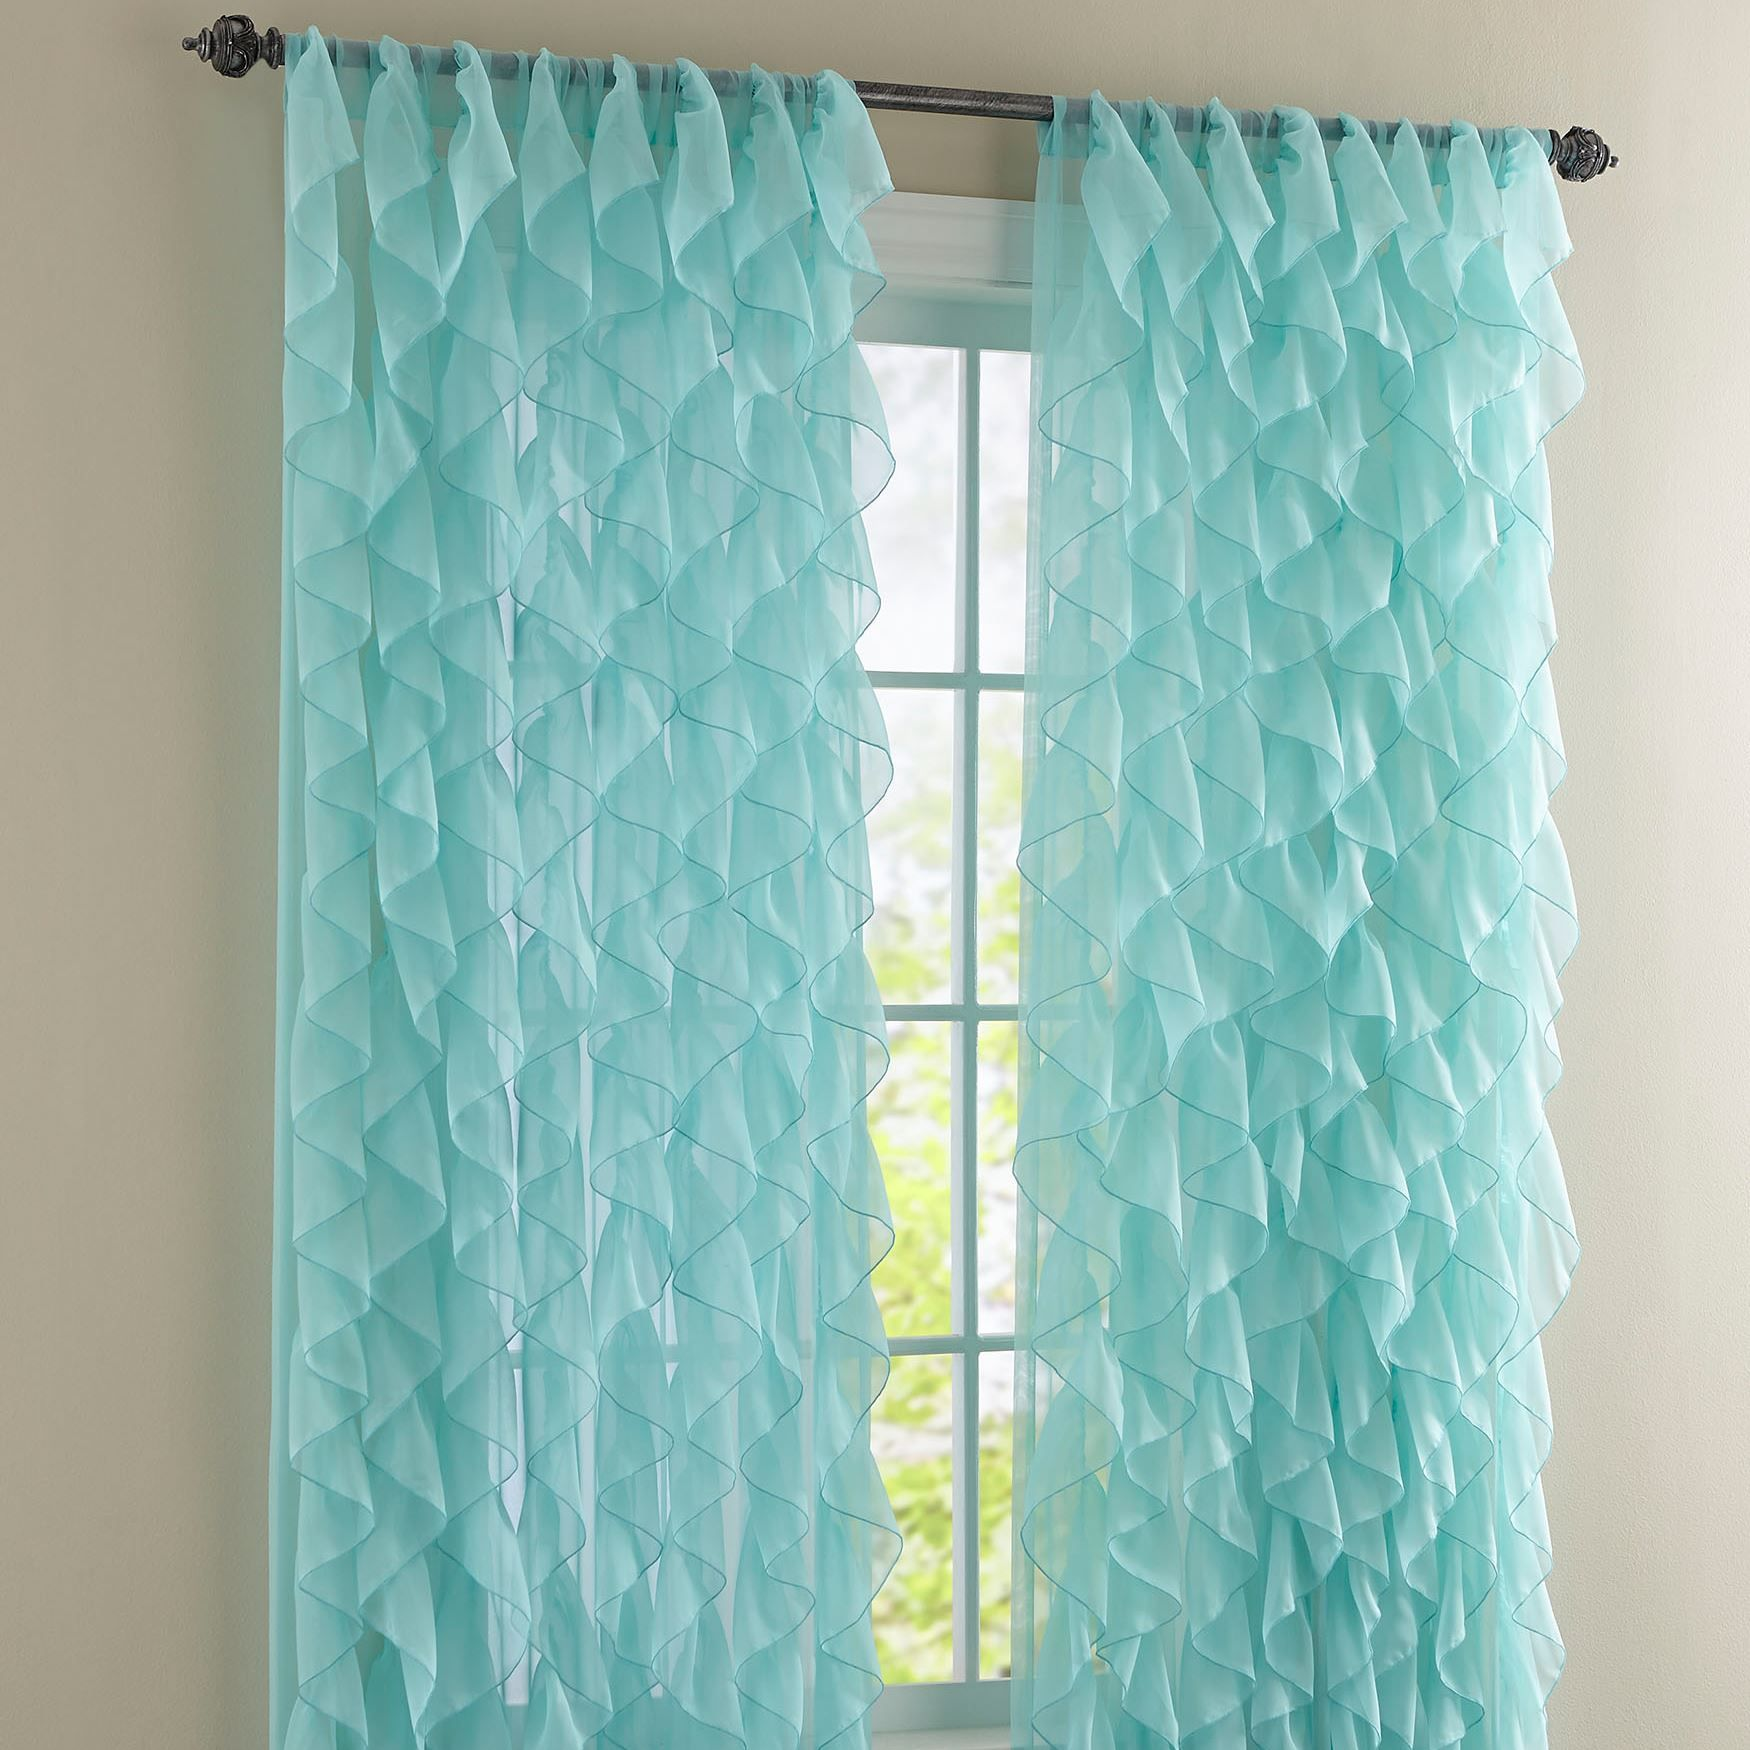 How to make rod pocket curtains - Cascade Rod Pocket Curtain